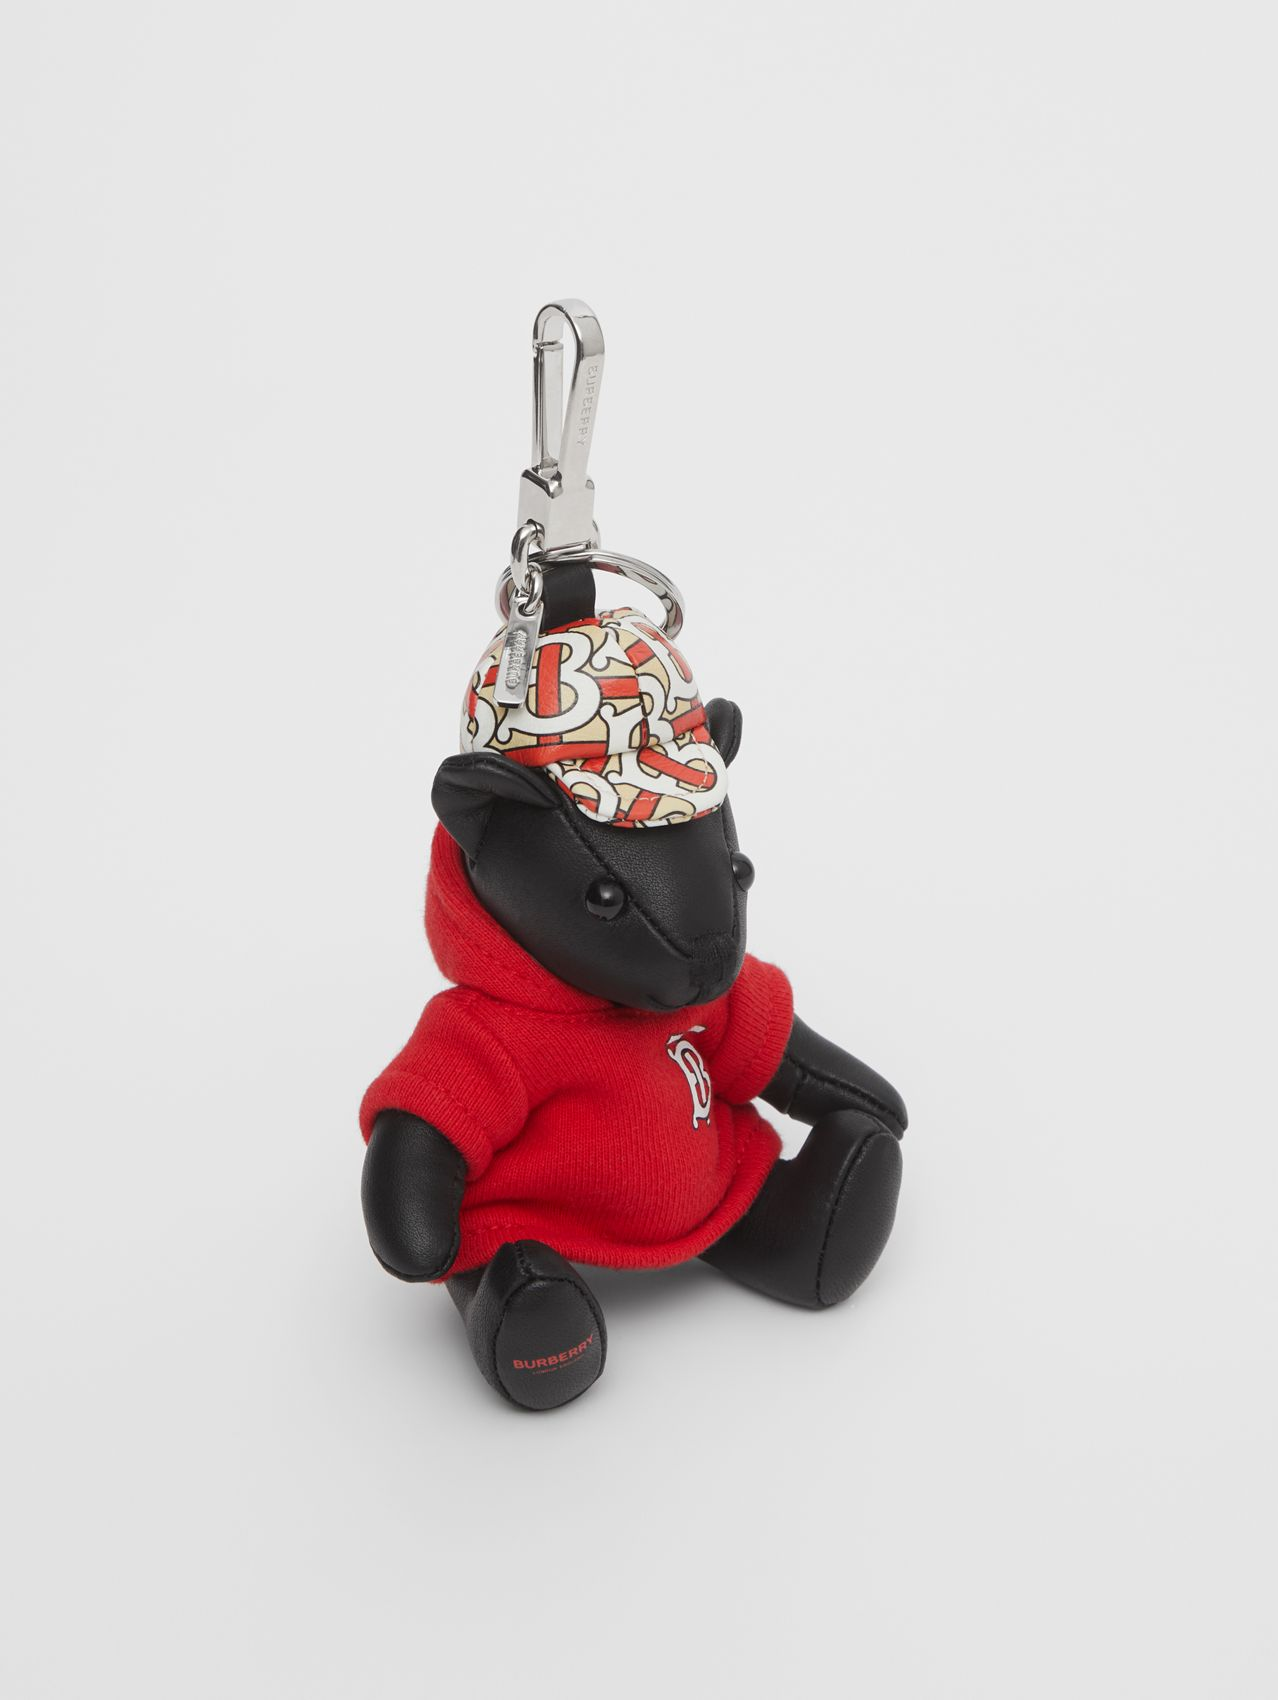 Bijou porte-clés Thomas Bear avec sweat-shirt à capuche Monogram in Noir/rouge